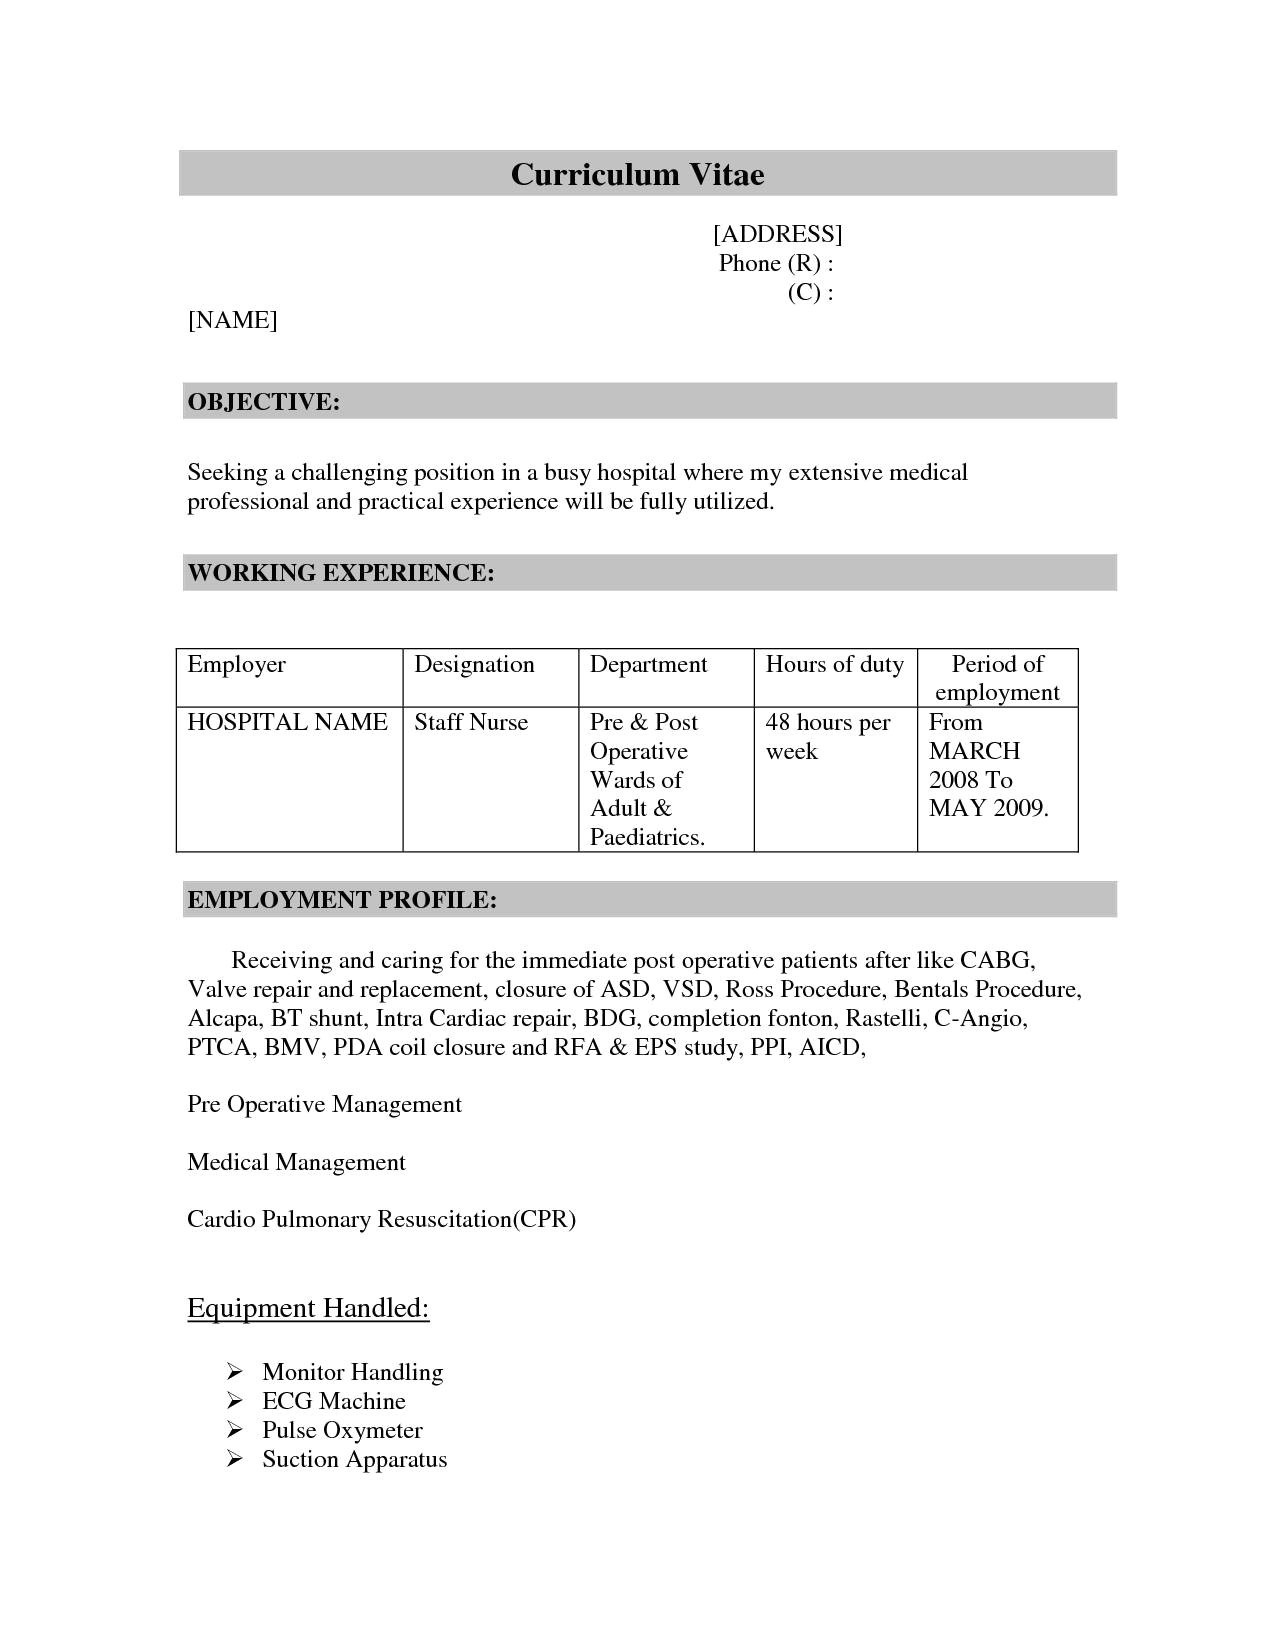 software testing resume samples for 1 year experience lovely gre essay prompt cheap critical analysis essay proofreading for